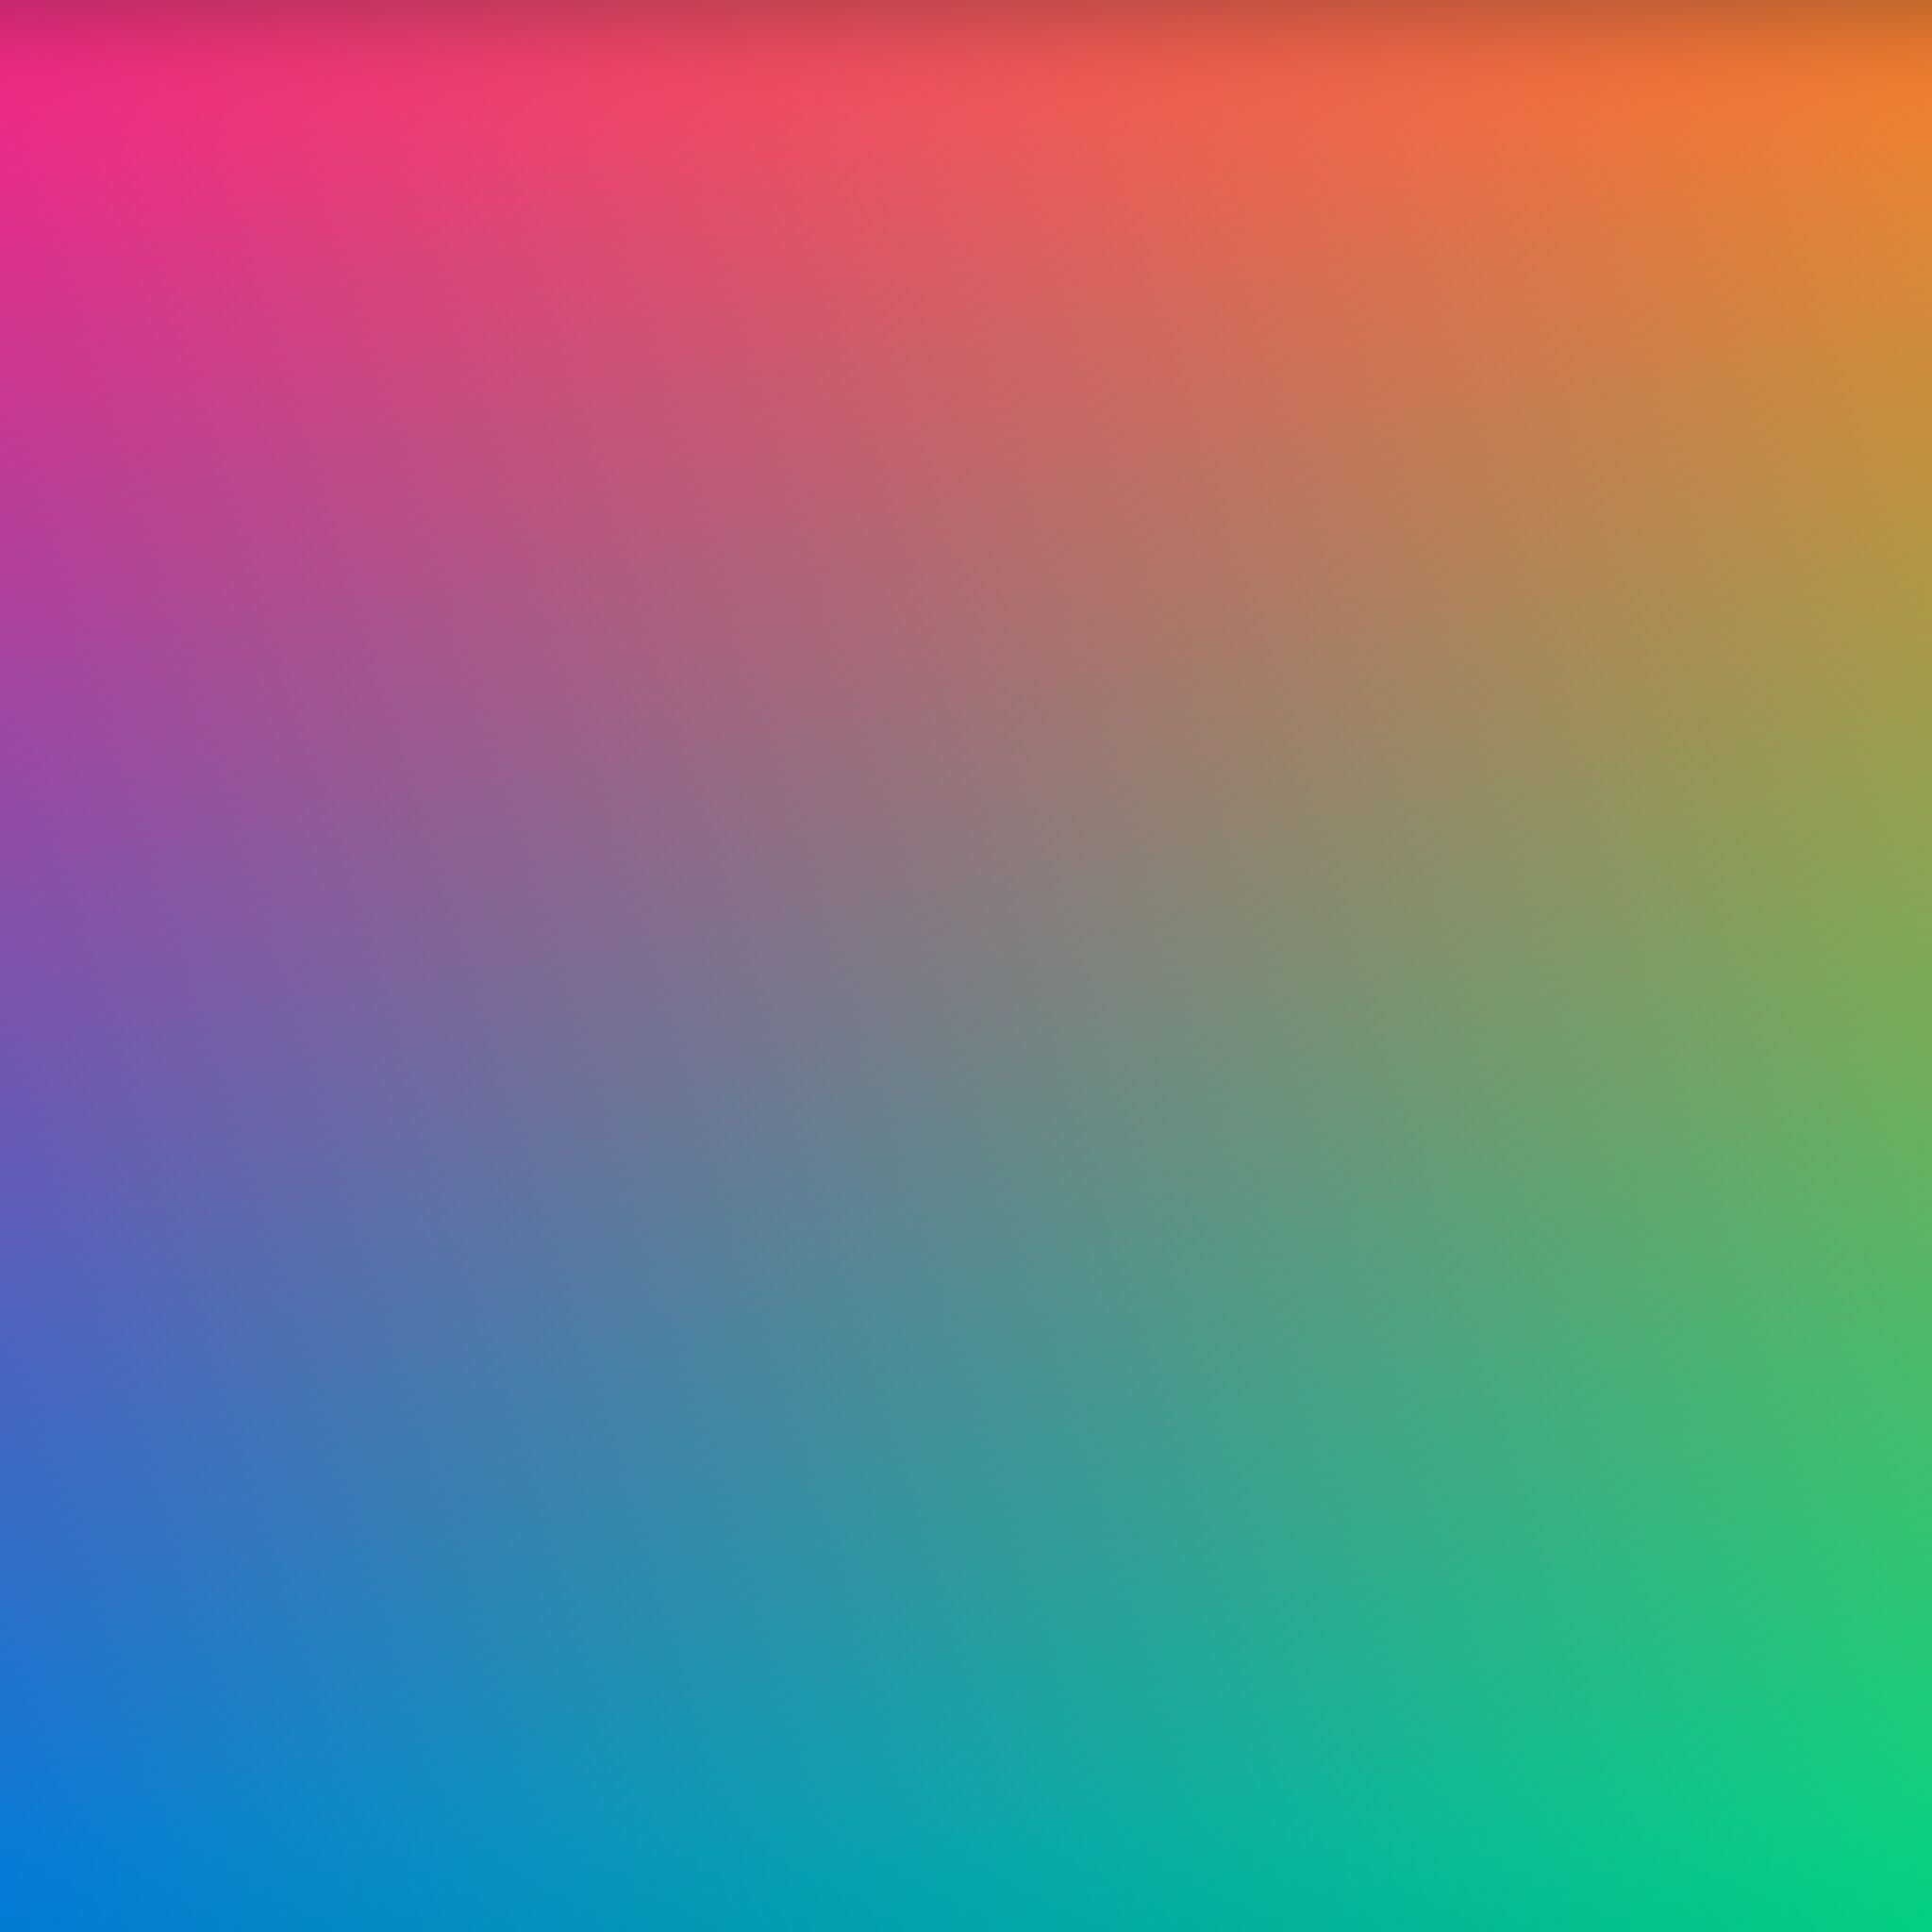 Iphone X Colour Wallpaper Sl87 Color Rainbow Blur Gradation Wallpaper